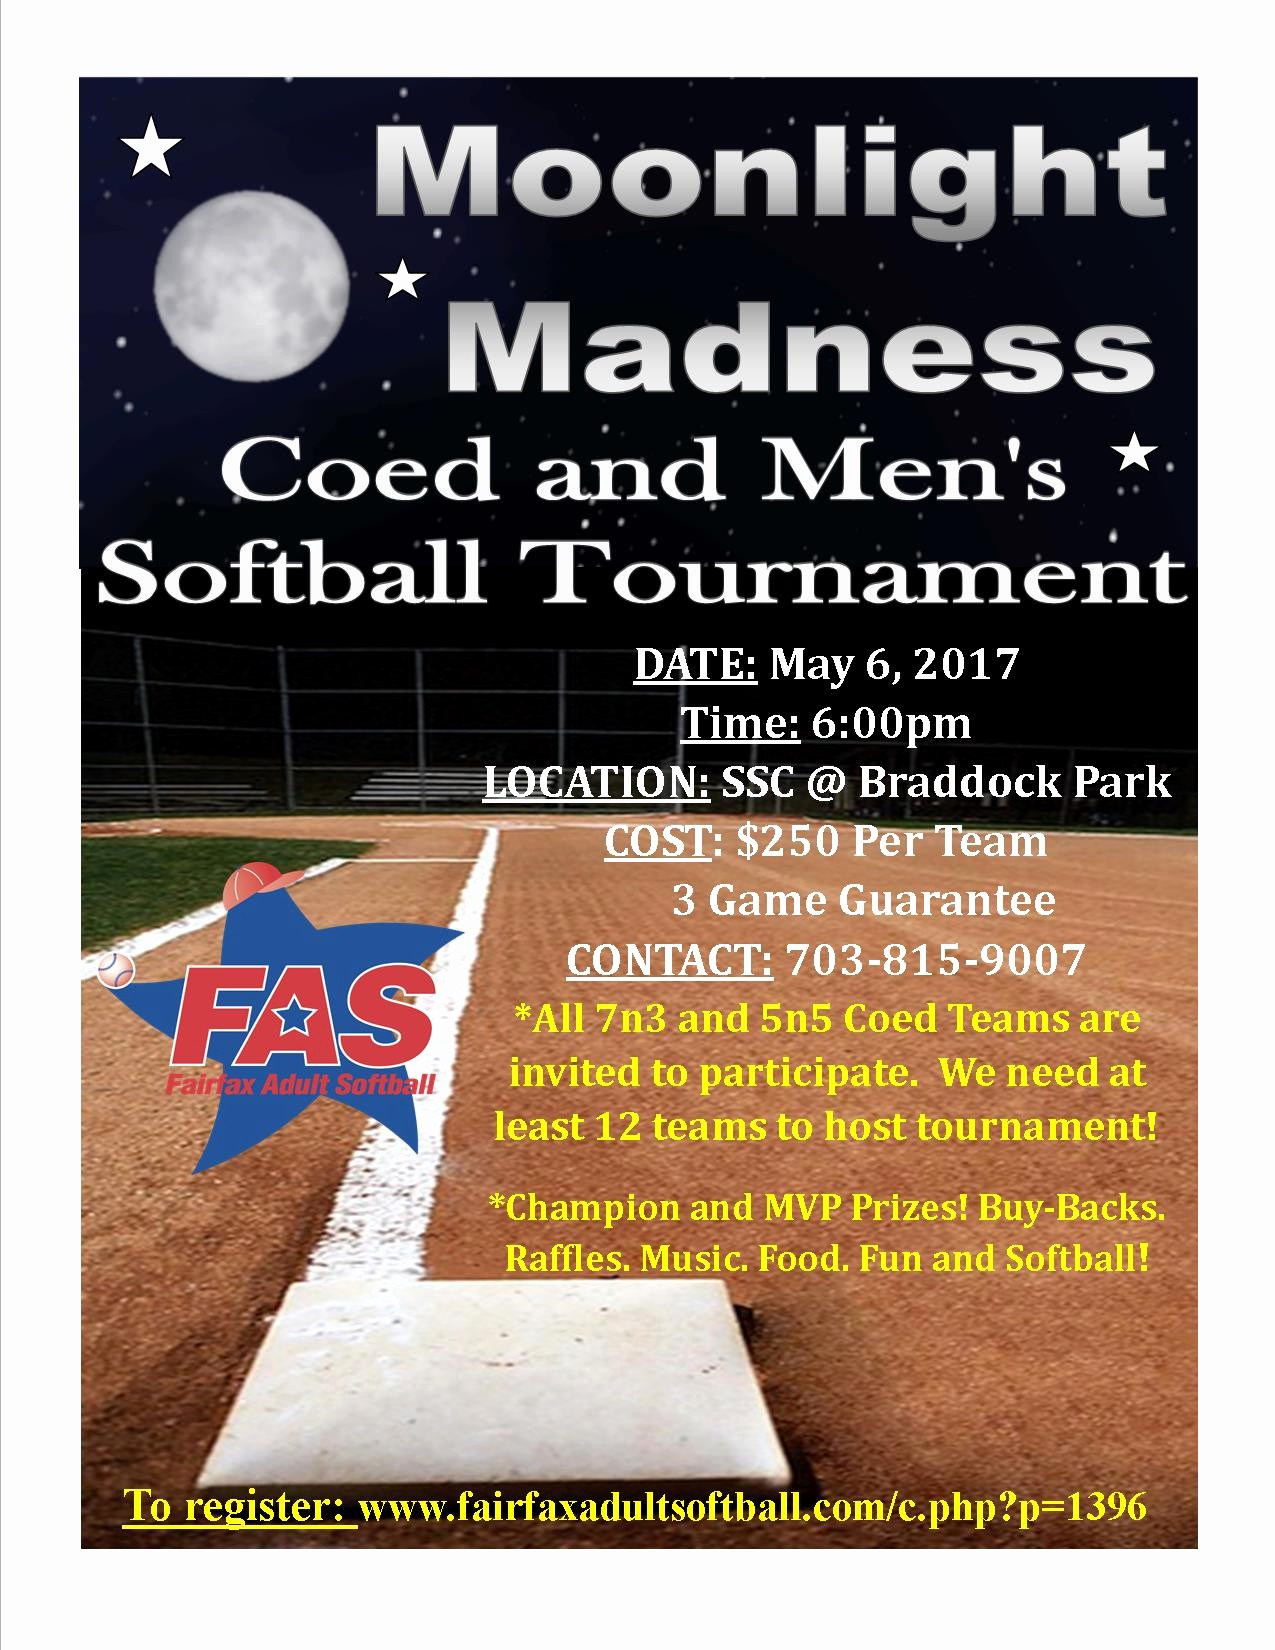 Softball tournament Flyer Template Free Awesome softball tournament Flyers Templates Yourweek 62d2afeca25e